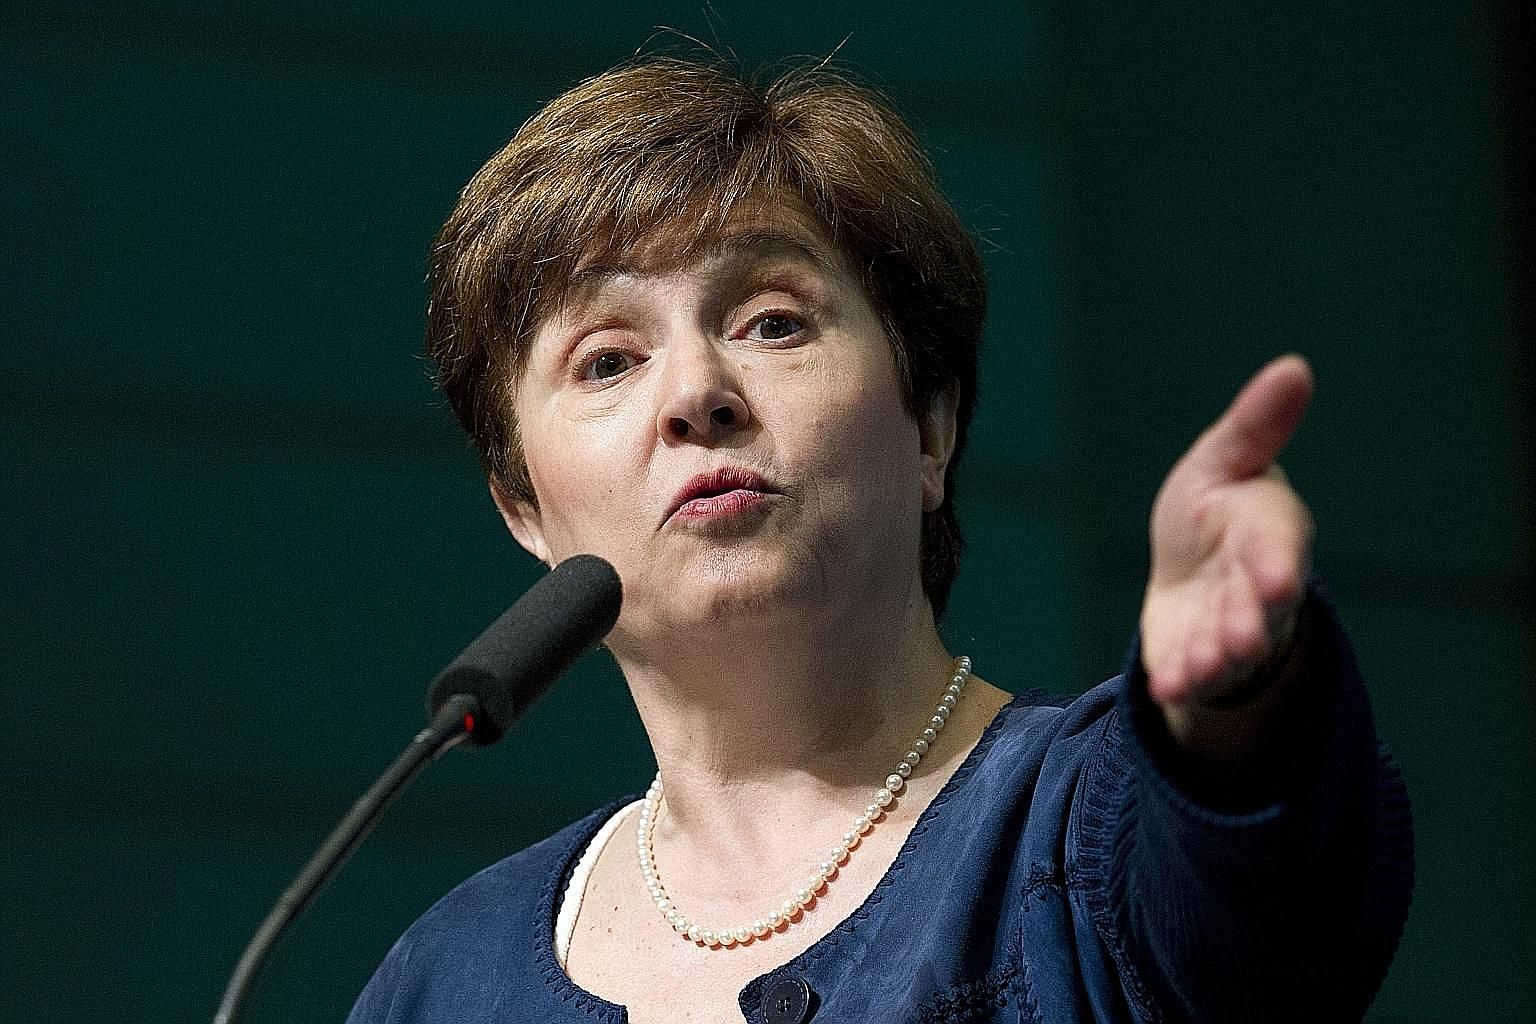 Dr Kristalina Georgieva is known for her efficiency and enthusiasm, and is well used to top international roles.